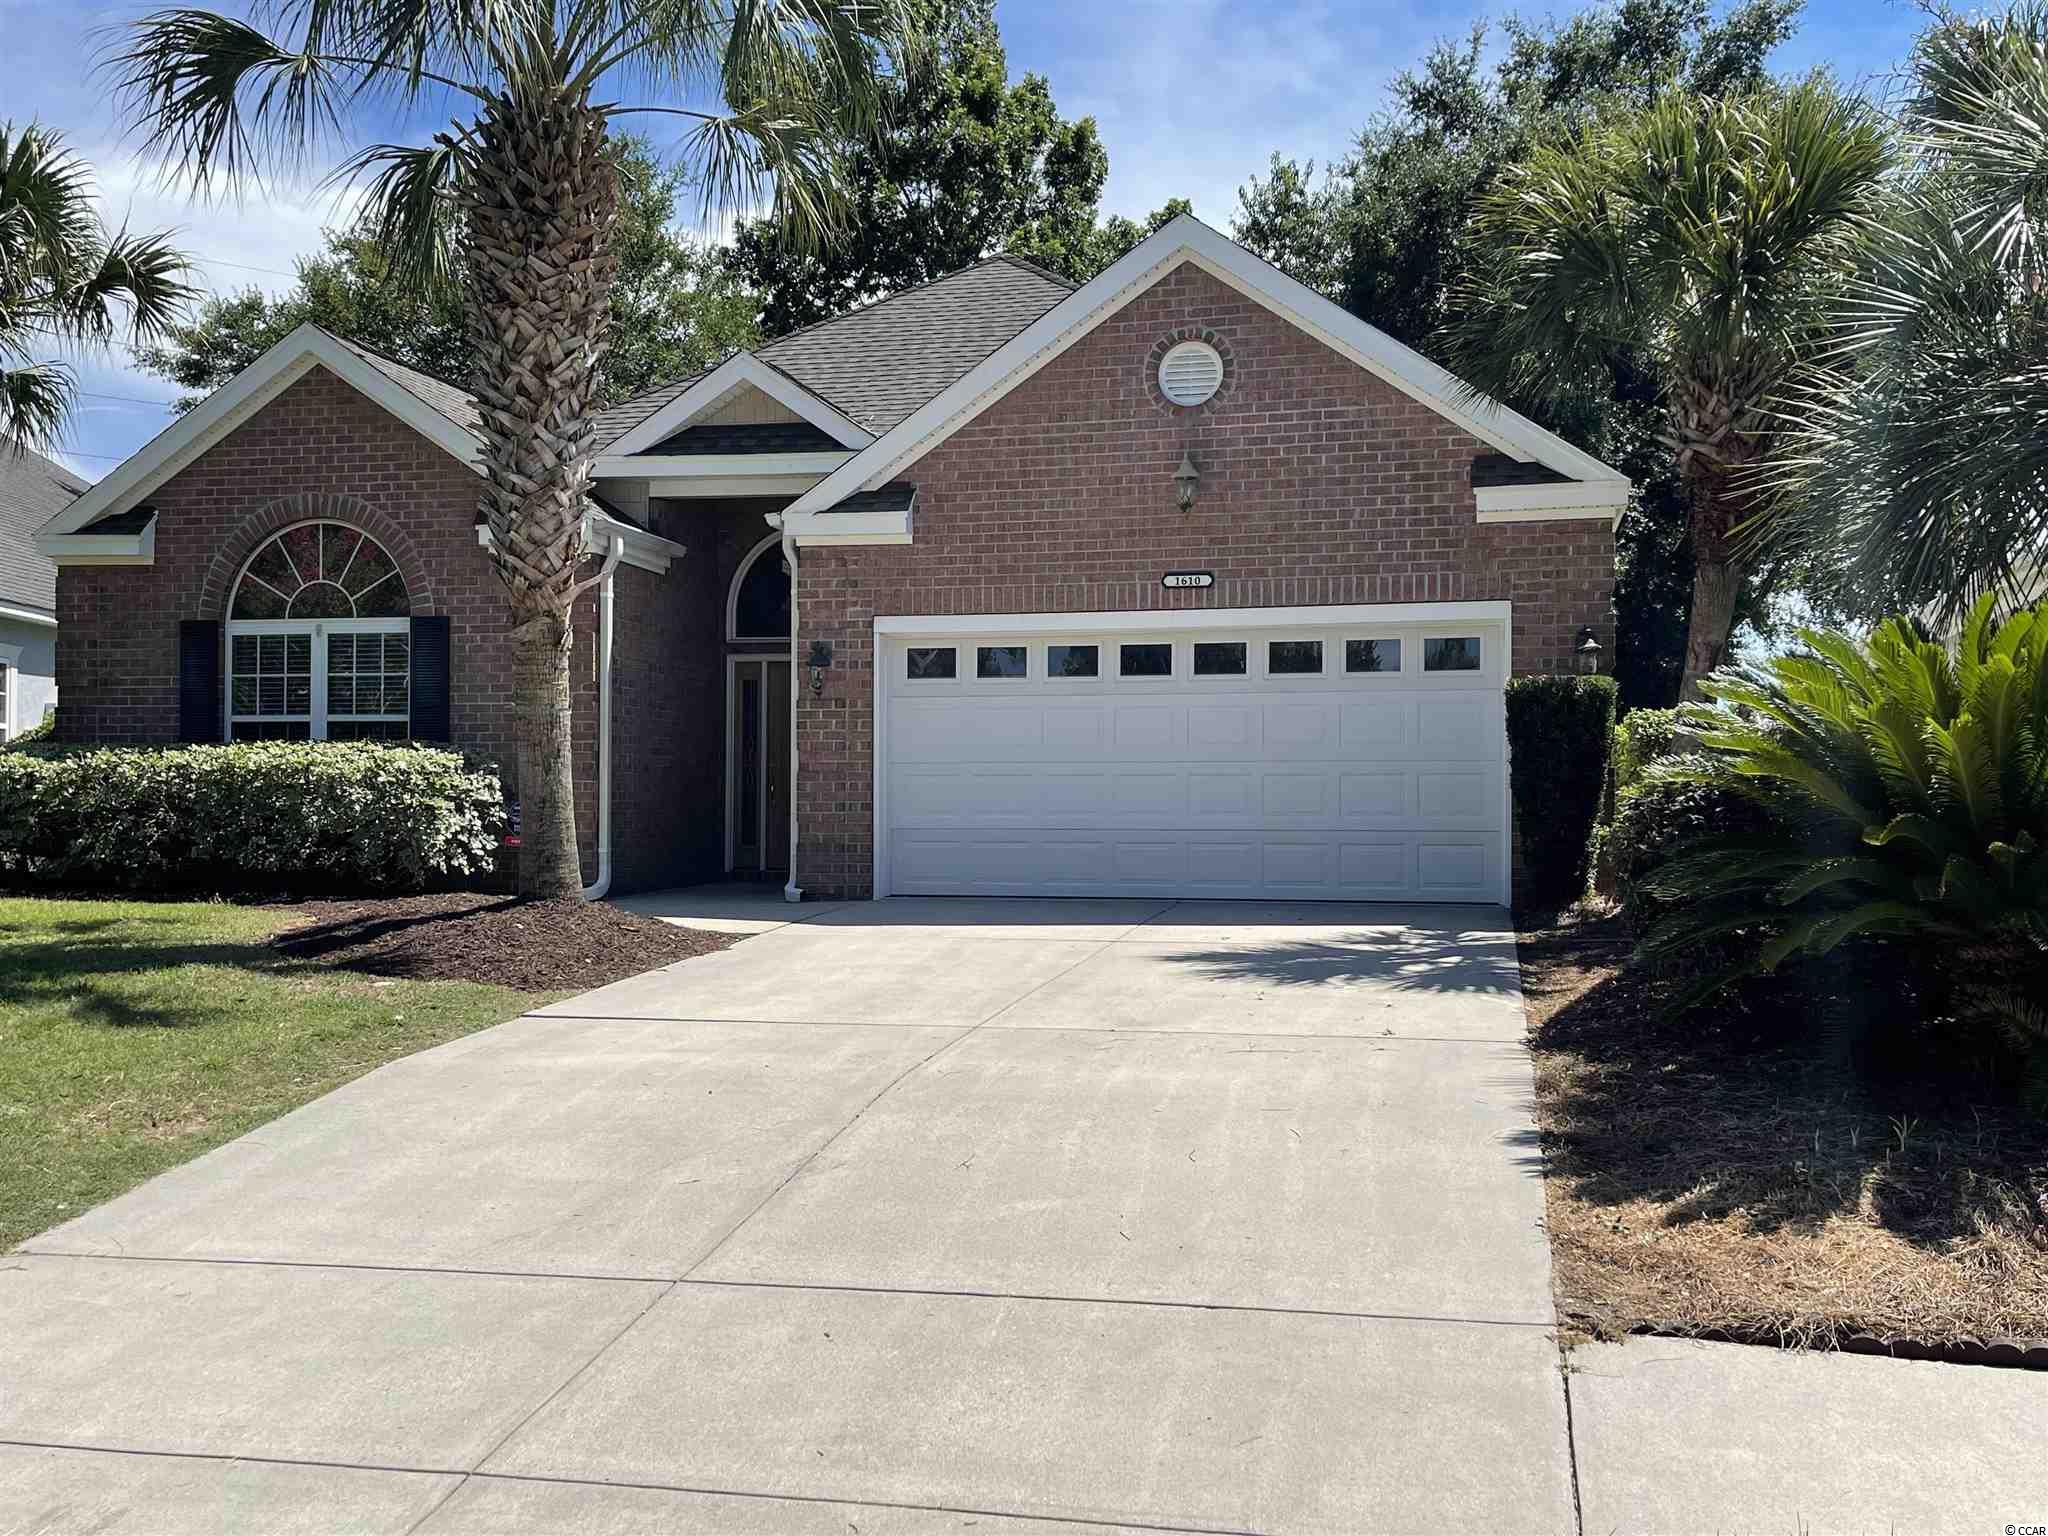 Sunset Harbor ranch home with new carpet and fresh paint throughout with updated kitchen and open floor plan, His and Hers closet and sinks. Screened in back porch faces pond and fountain. Community clubhouse, pool, boat dock, boat ramp and boat/RV storage lot.